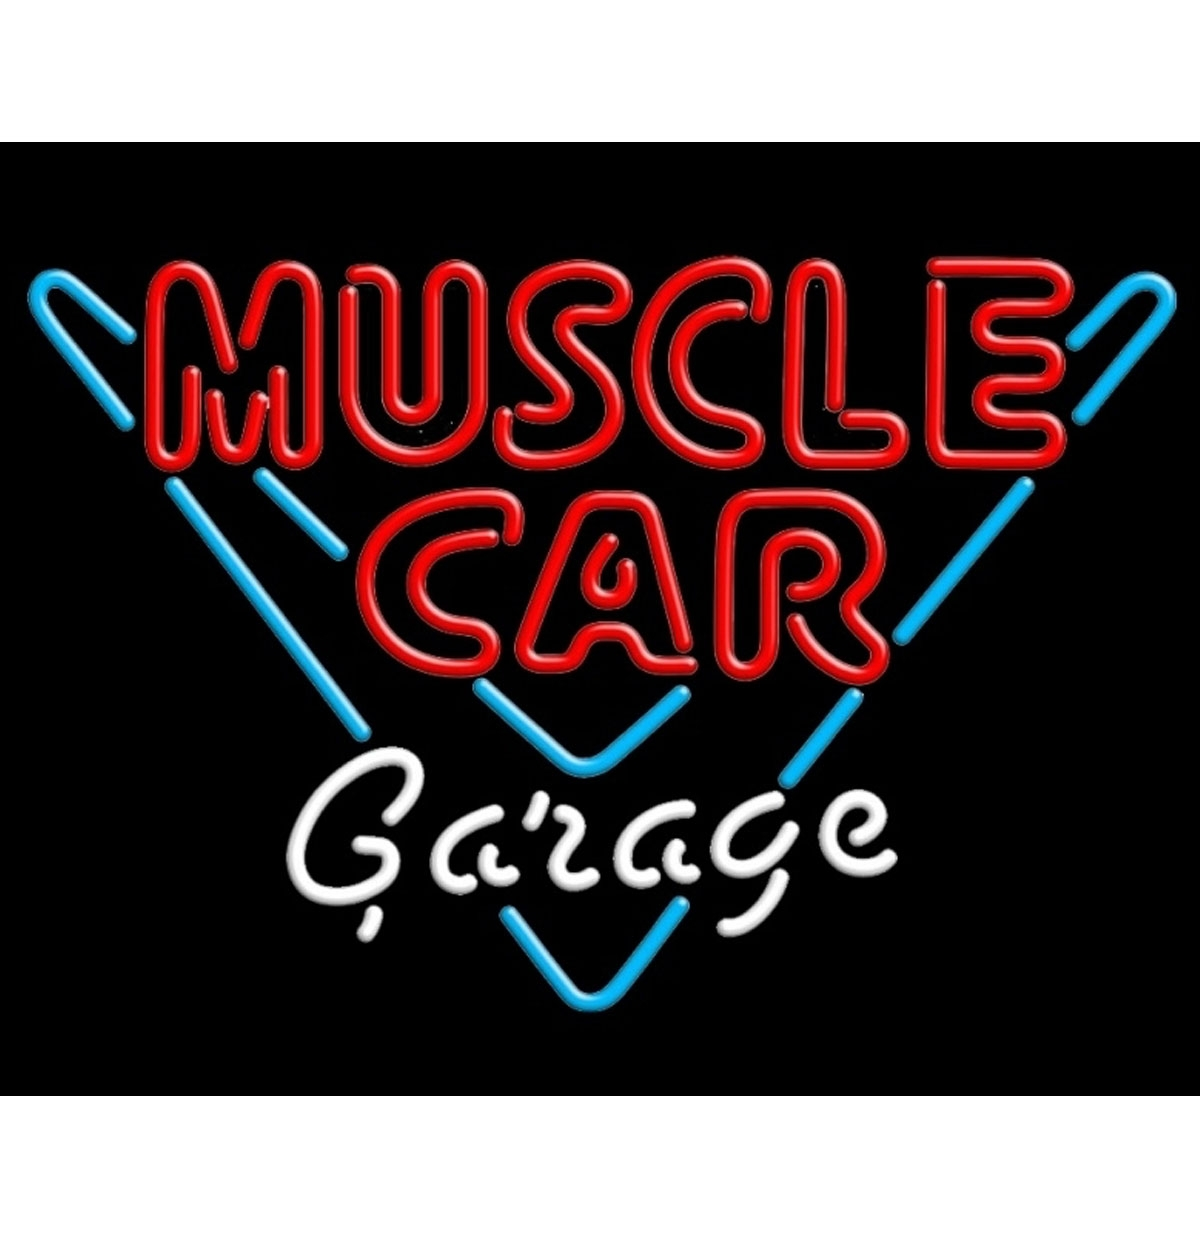 Muscle Car Garage Neon Verlichting